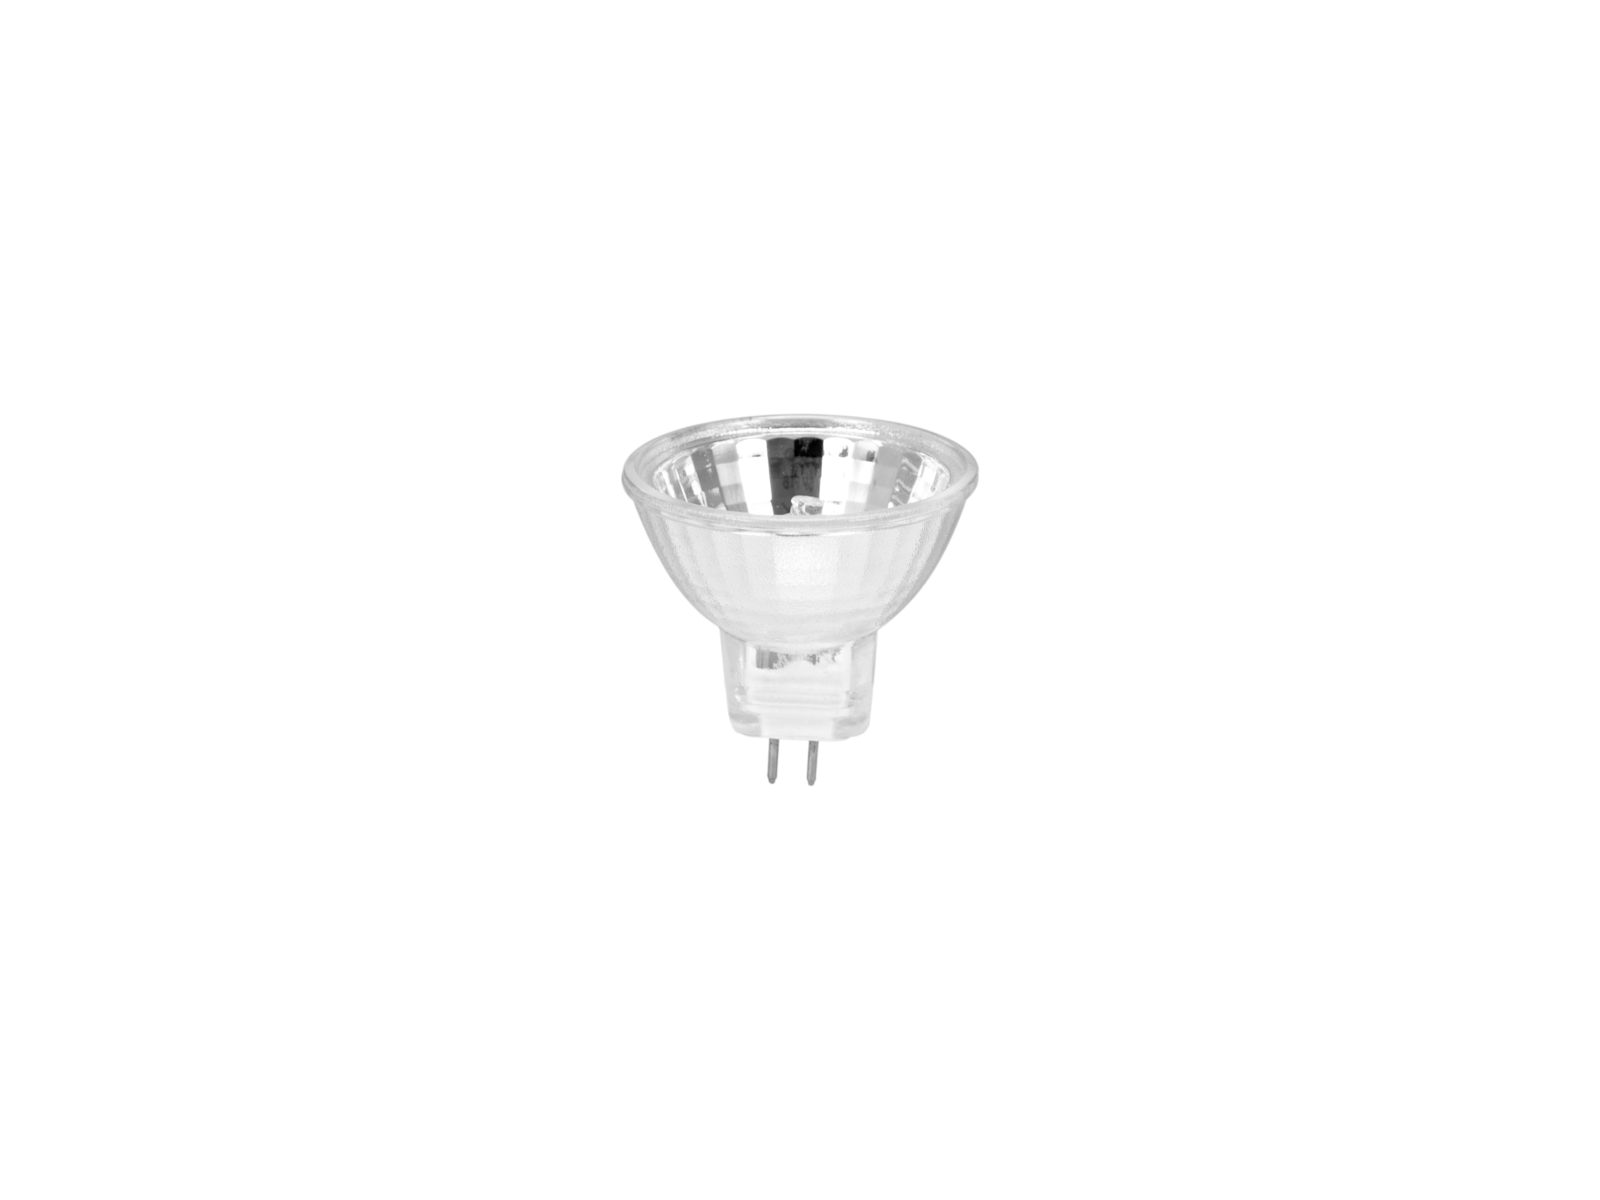 OMNILUX MR-11 12V/35W G-4 SP F